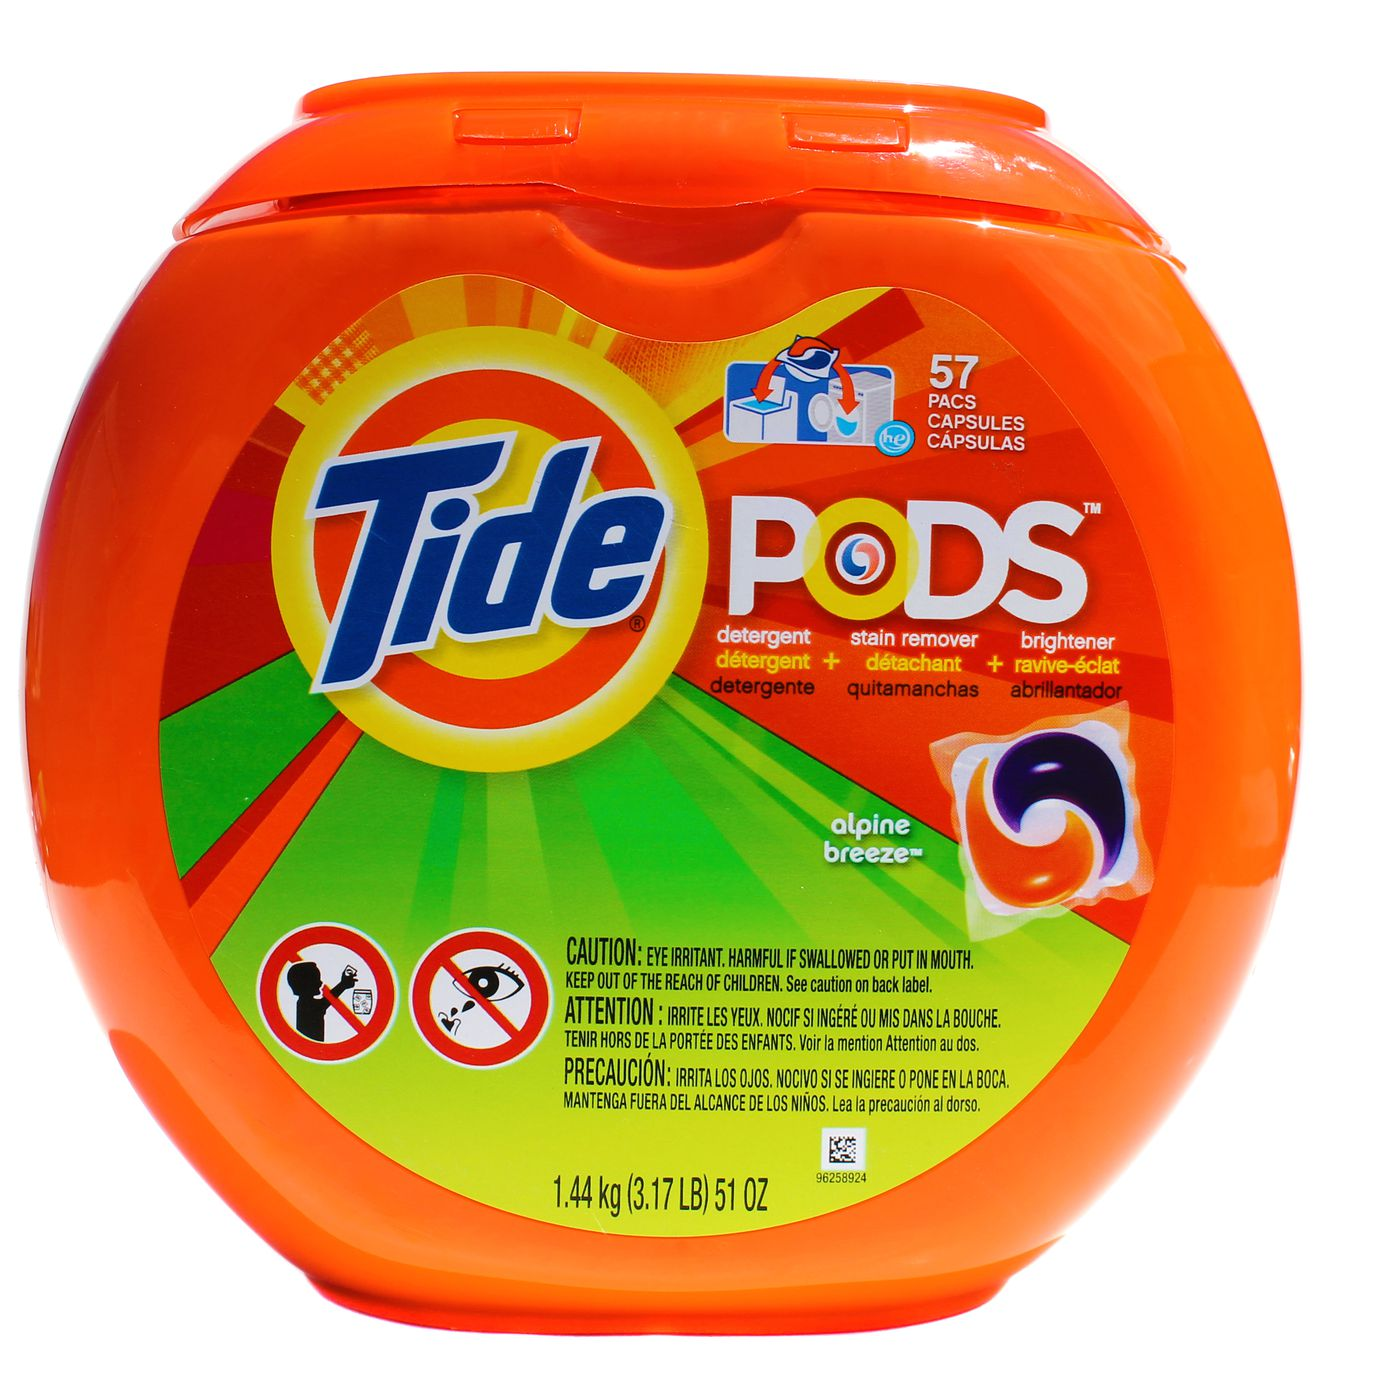 Don't try the Tide Pod Challenge, despite the memes  But